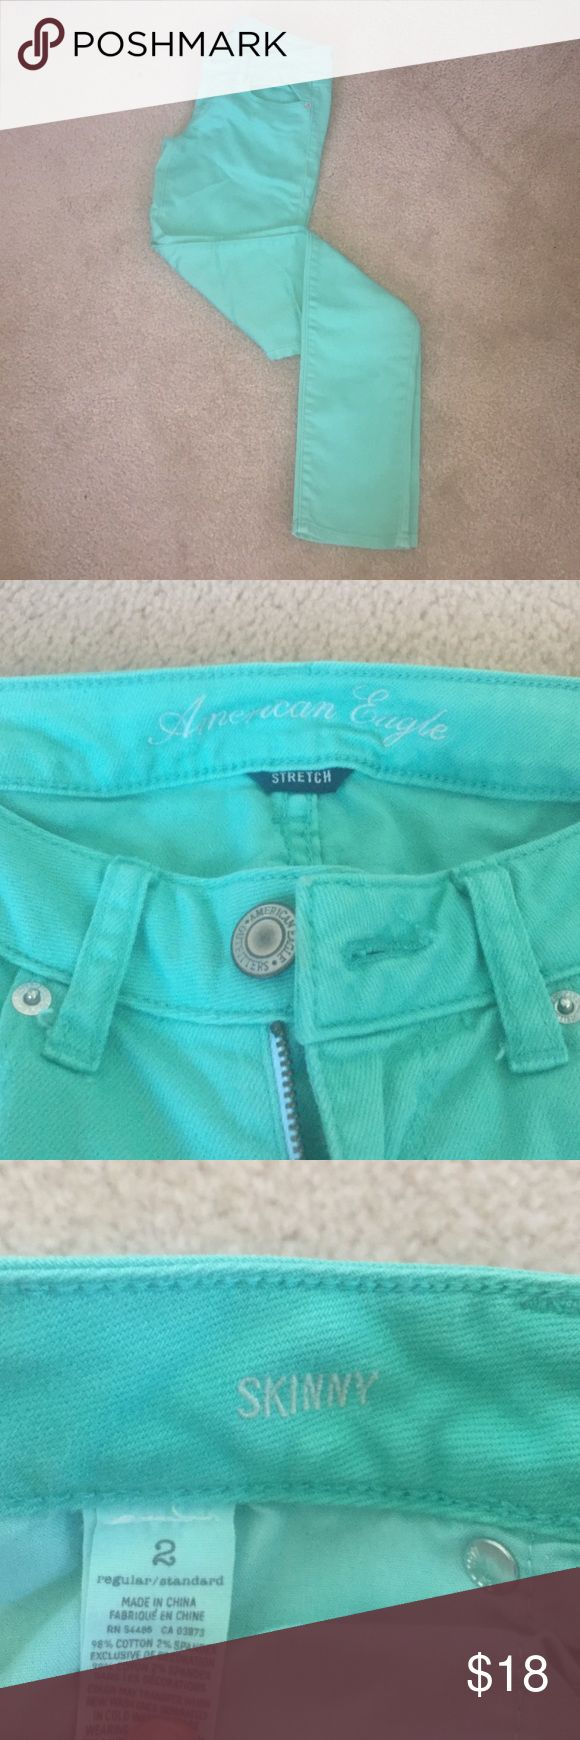 Mint green jeans American Eagle size 2 mint green skinny jeans. Worn a few times. They are size 2 regular! Perfect condition! American Eagle Outfitters Jeans Skinny